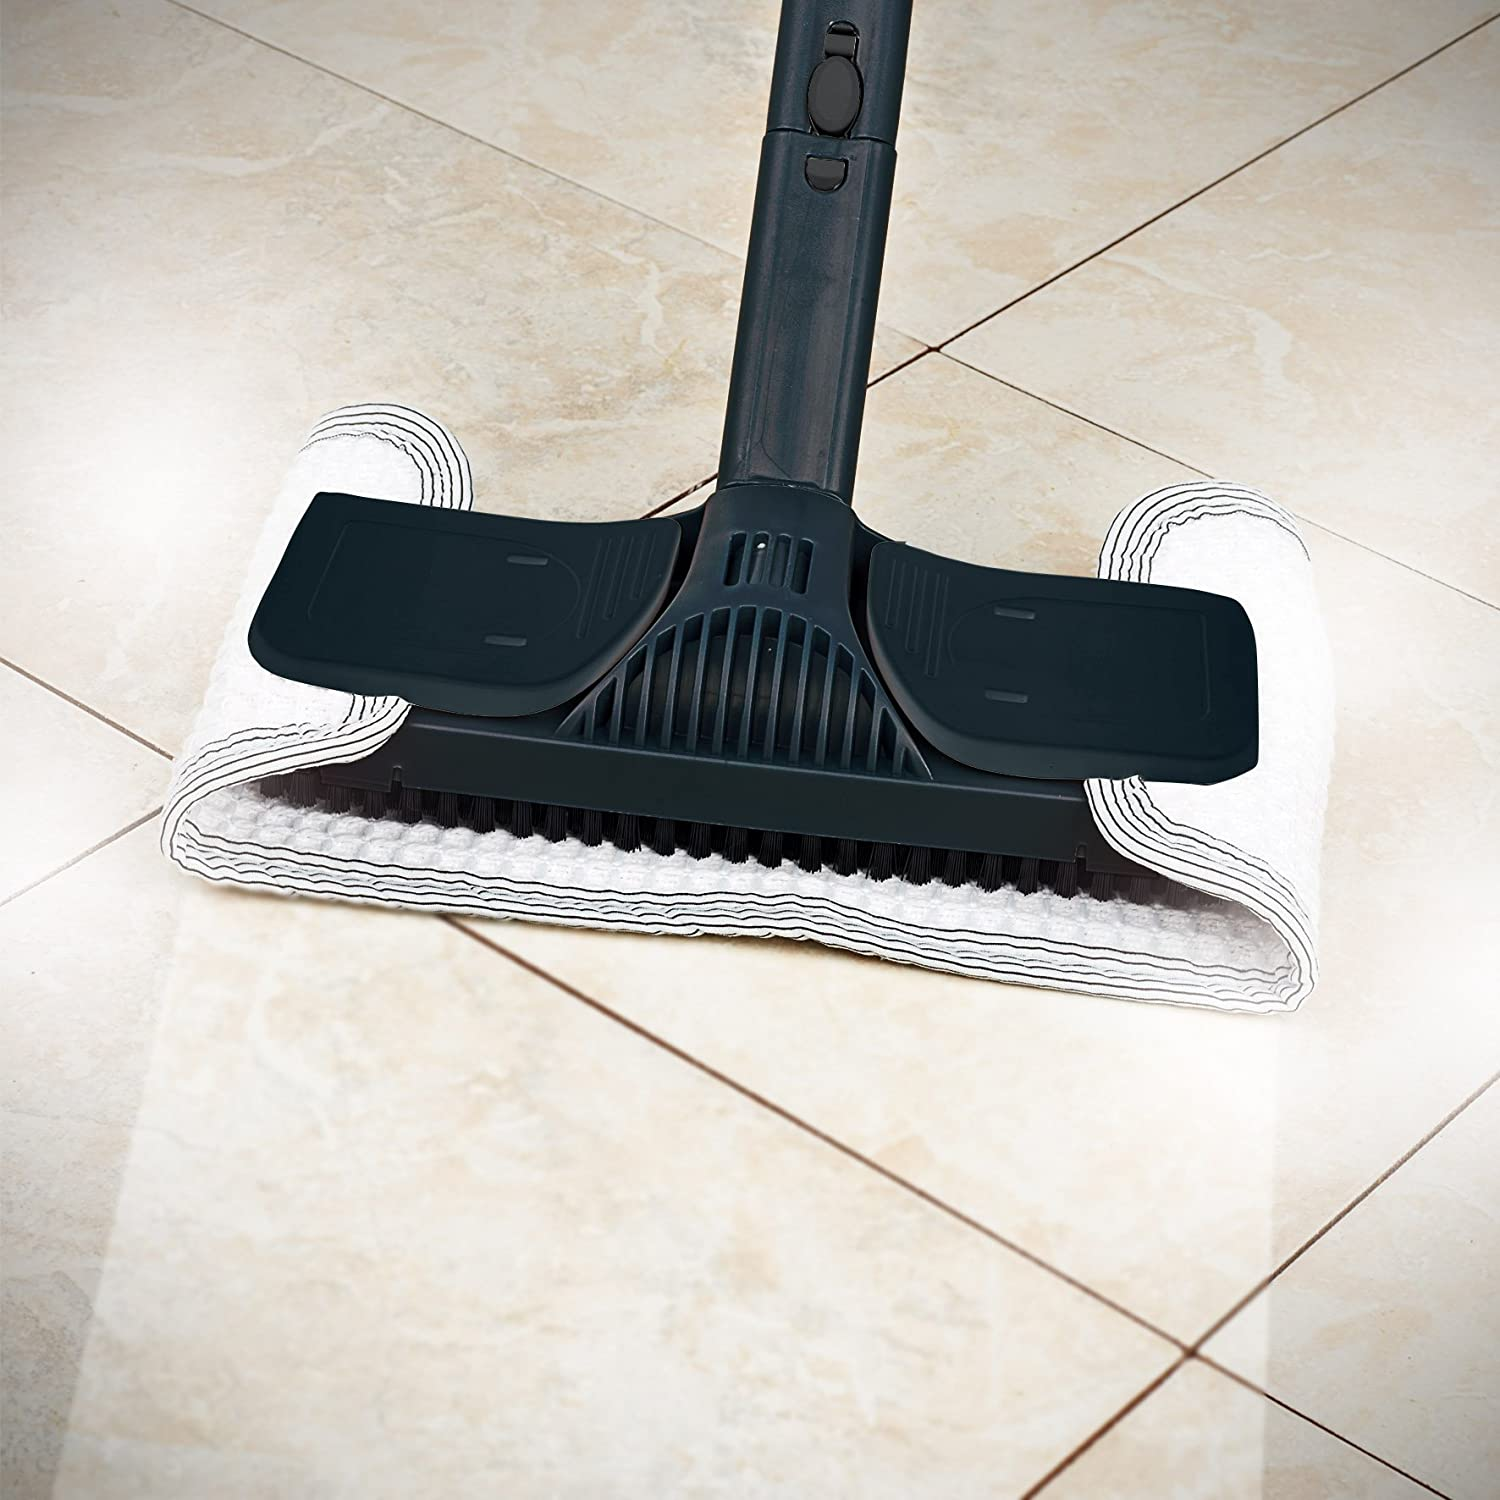 The benefits of a steam cleaner